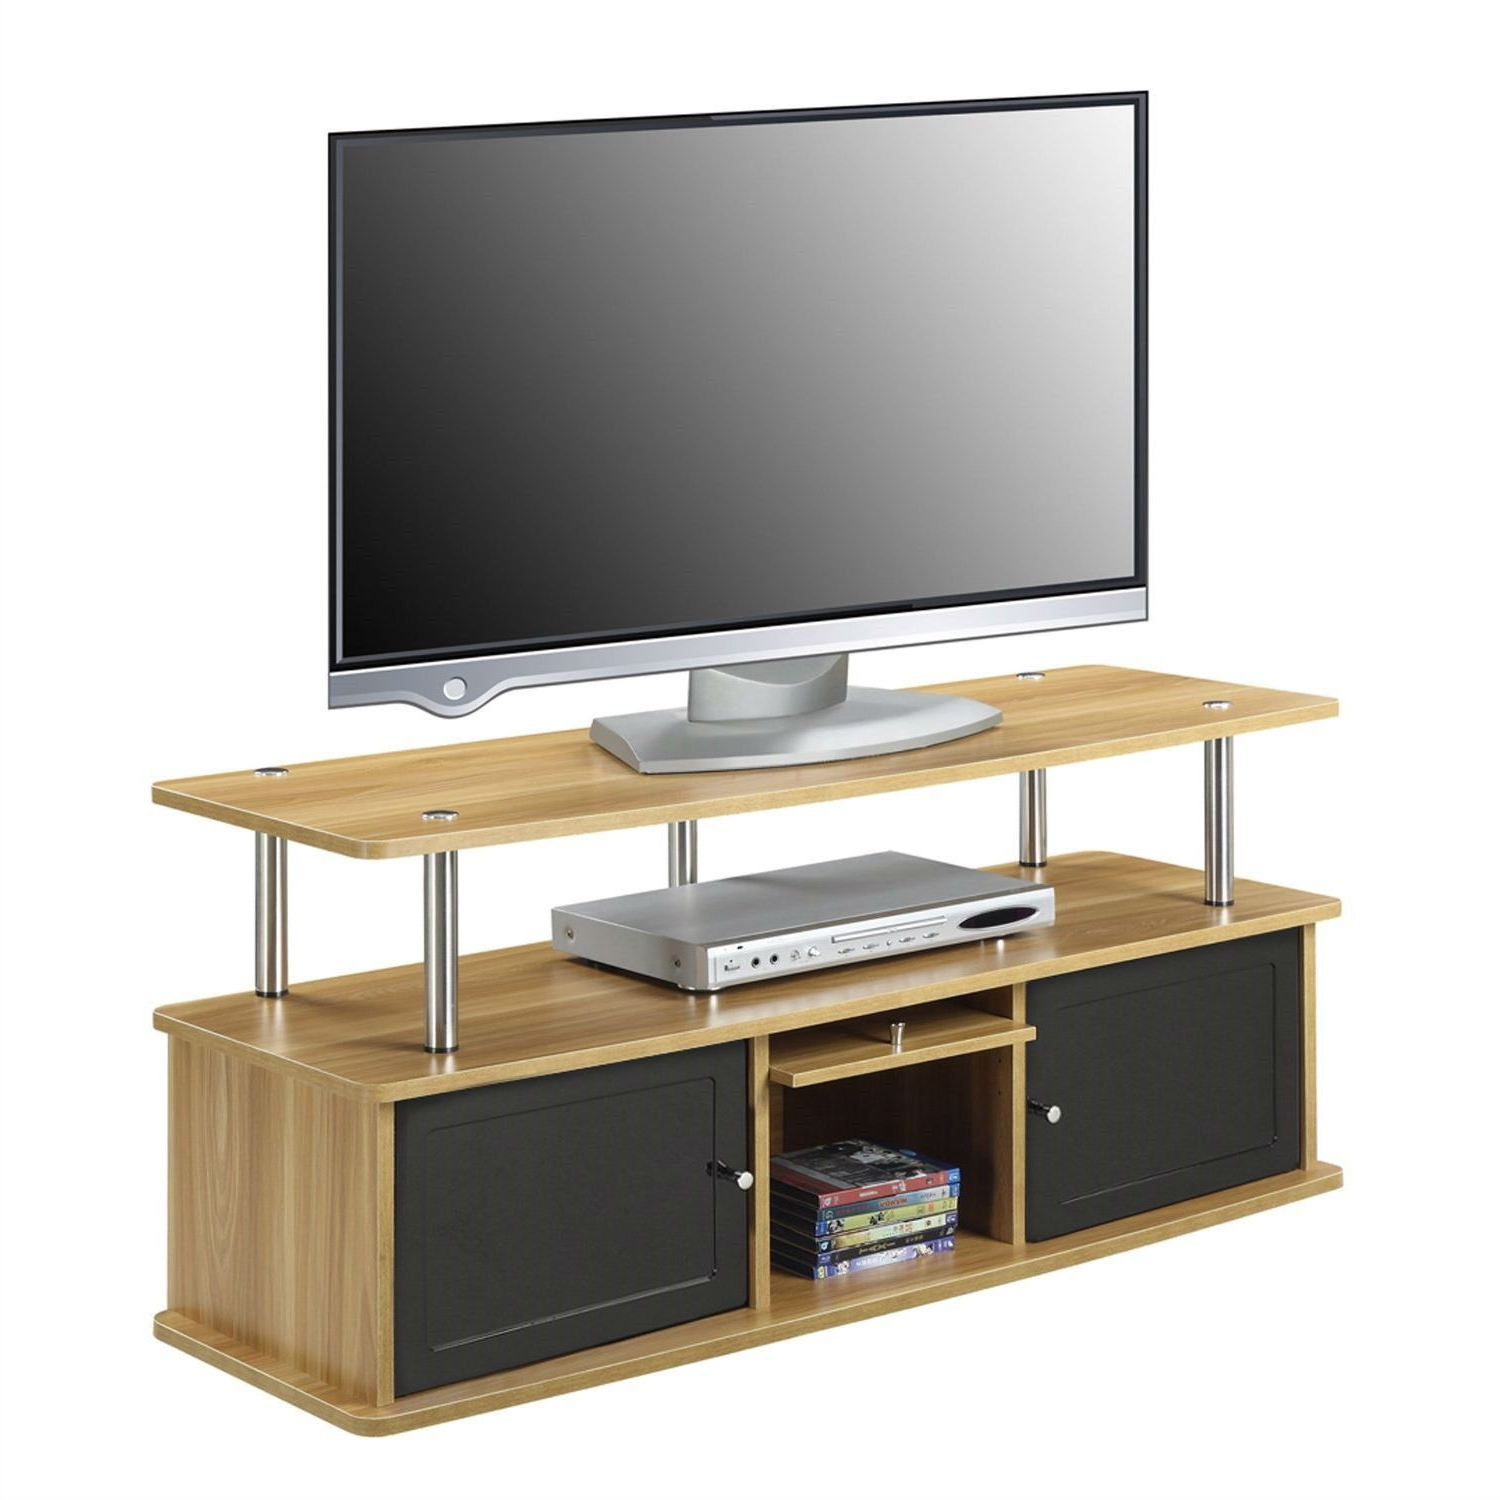 Modern 50 Inch Tv Stand In Light Oak / Black Wood Finish | Products With Regard To Rowan 64 Inch Tv Stands (View 12 of 20)